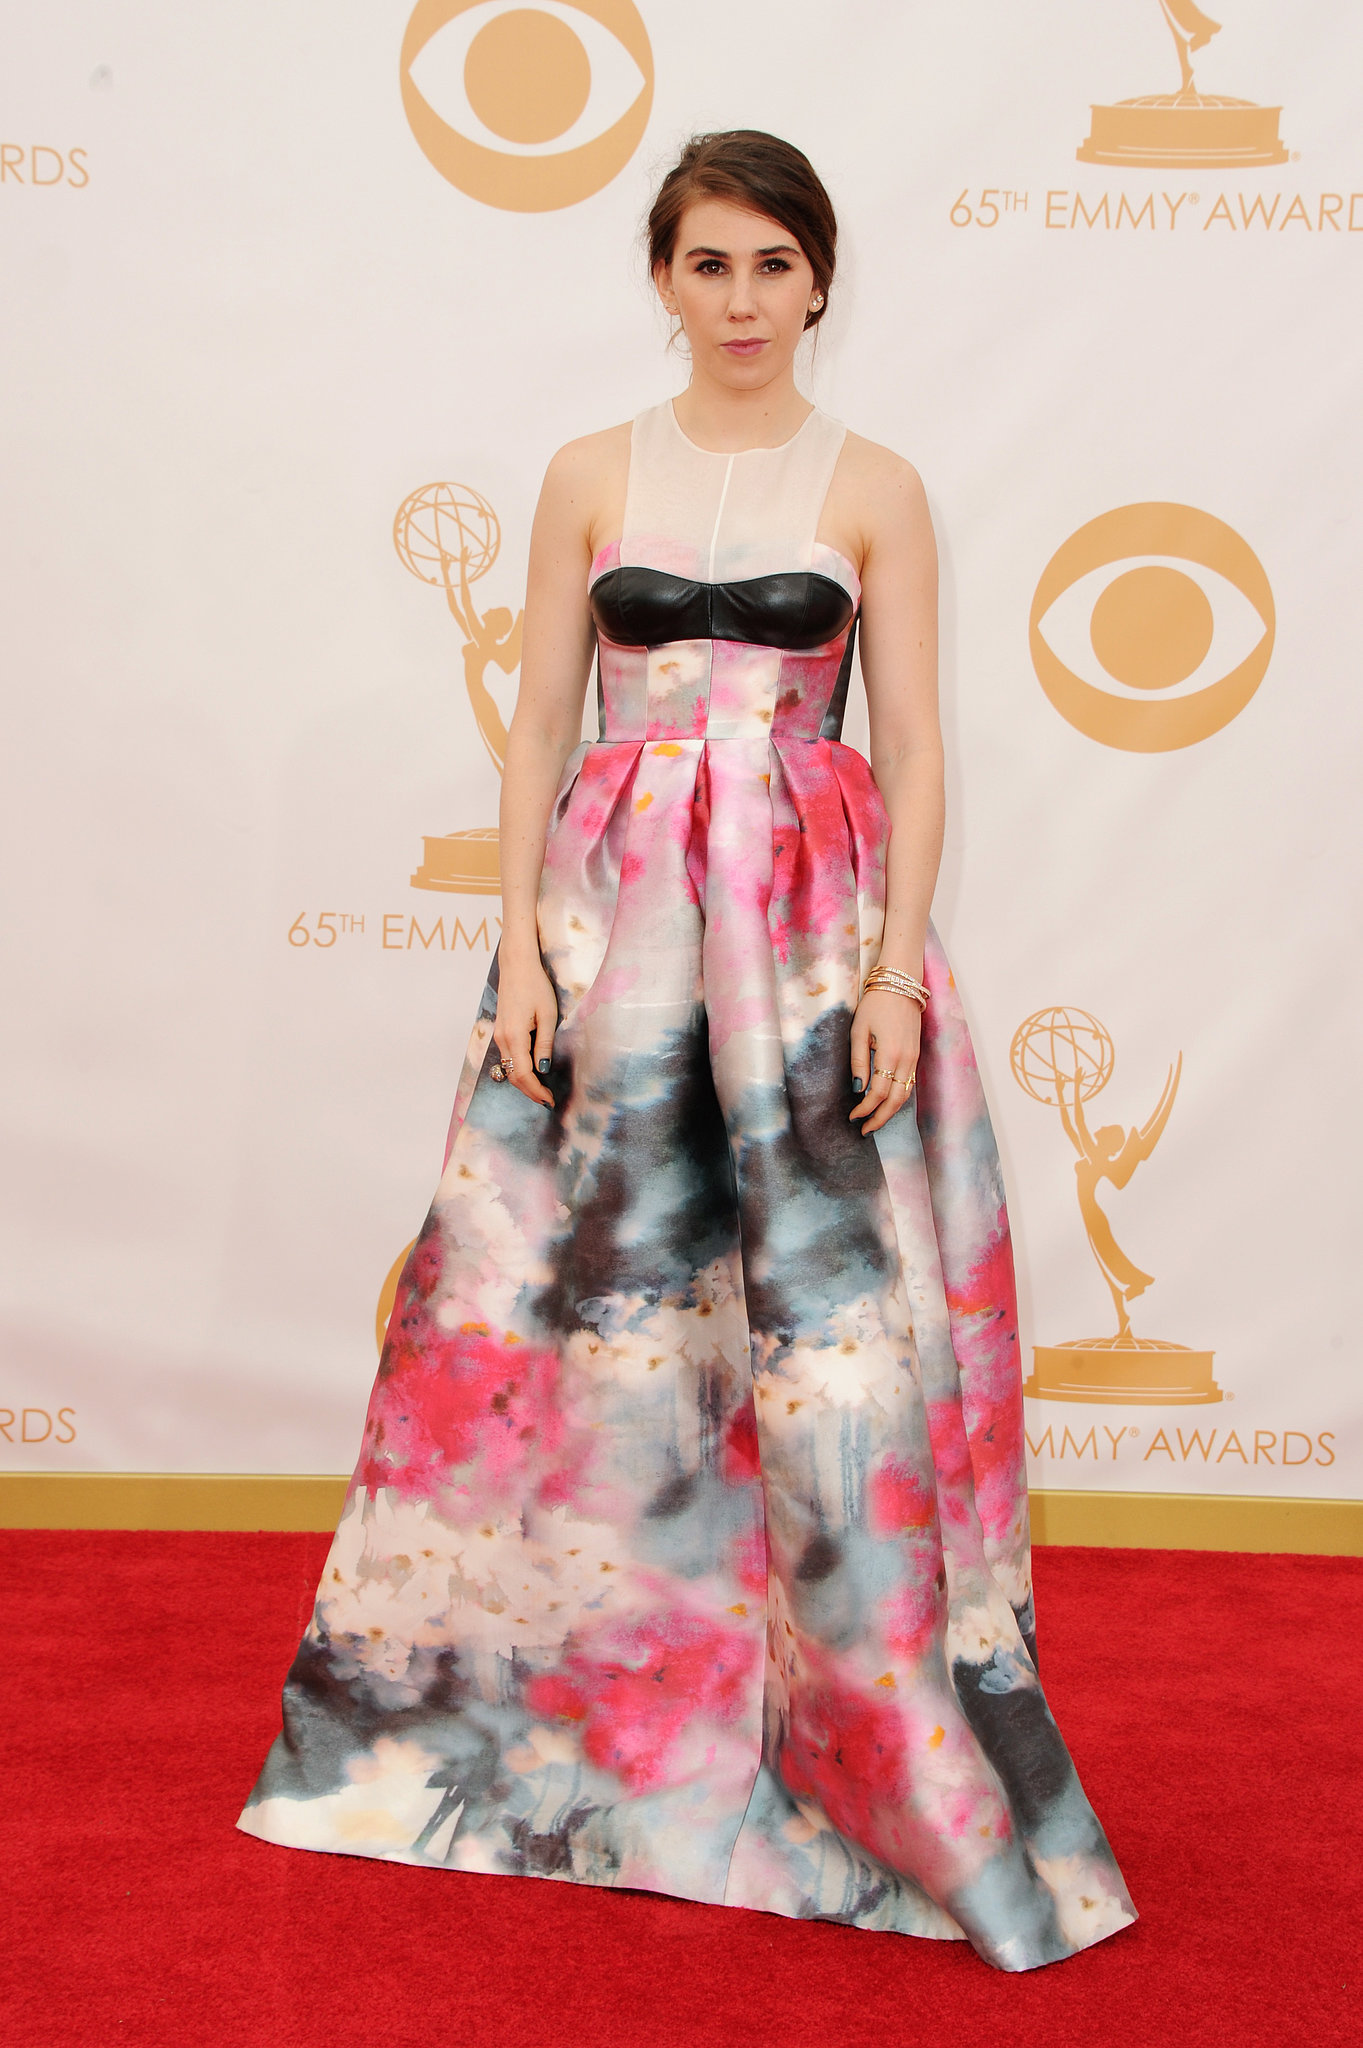 Zosia Mamet looked like a work of art in a custom Honor dress that evoked the beauty of watercolor florals. She finished it off with Brian Atwood heels.